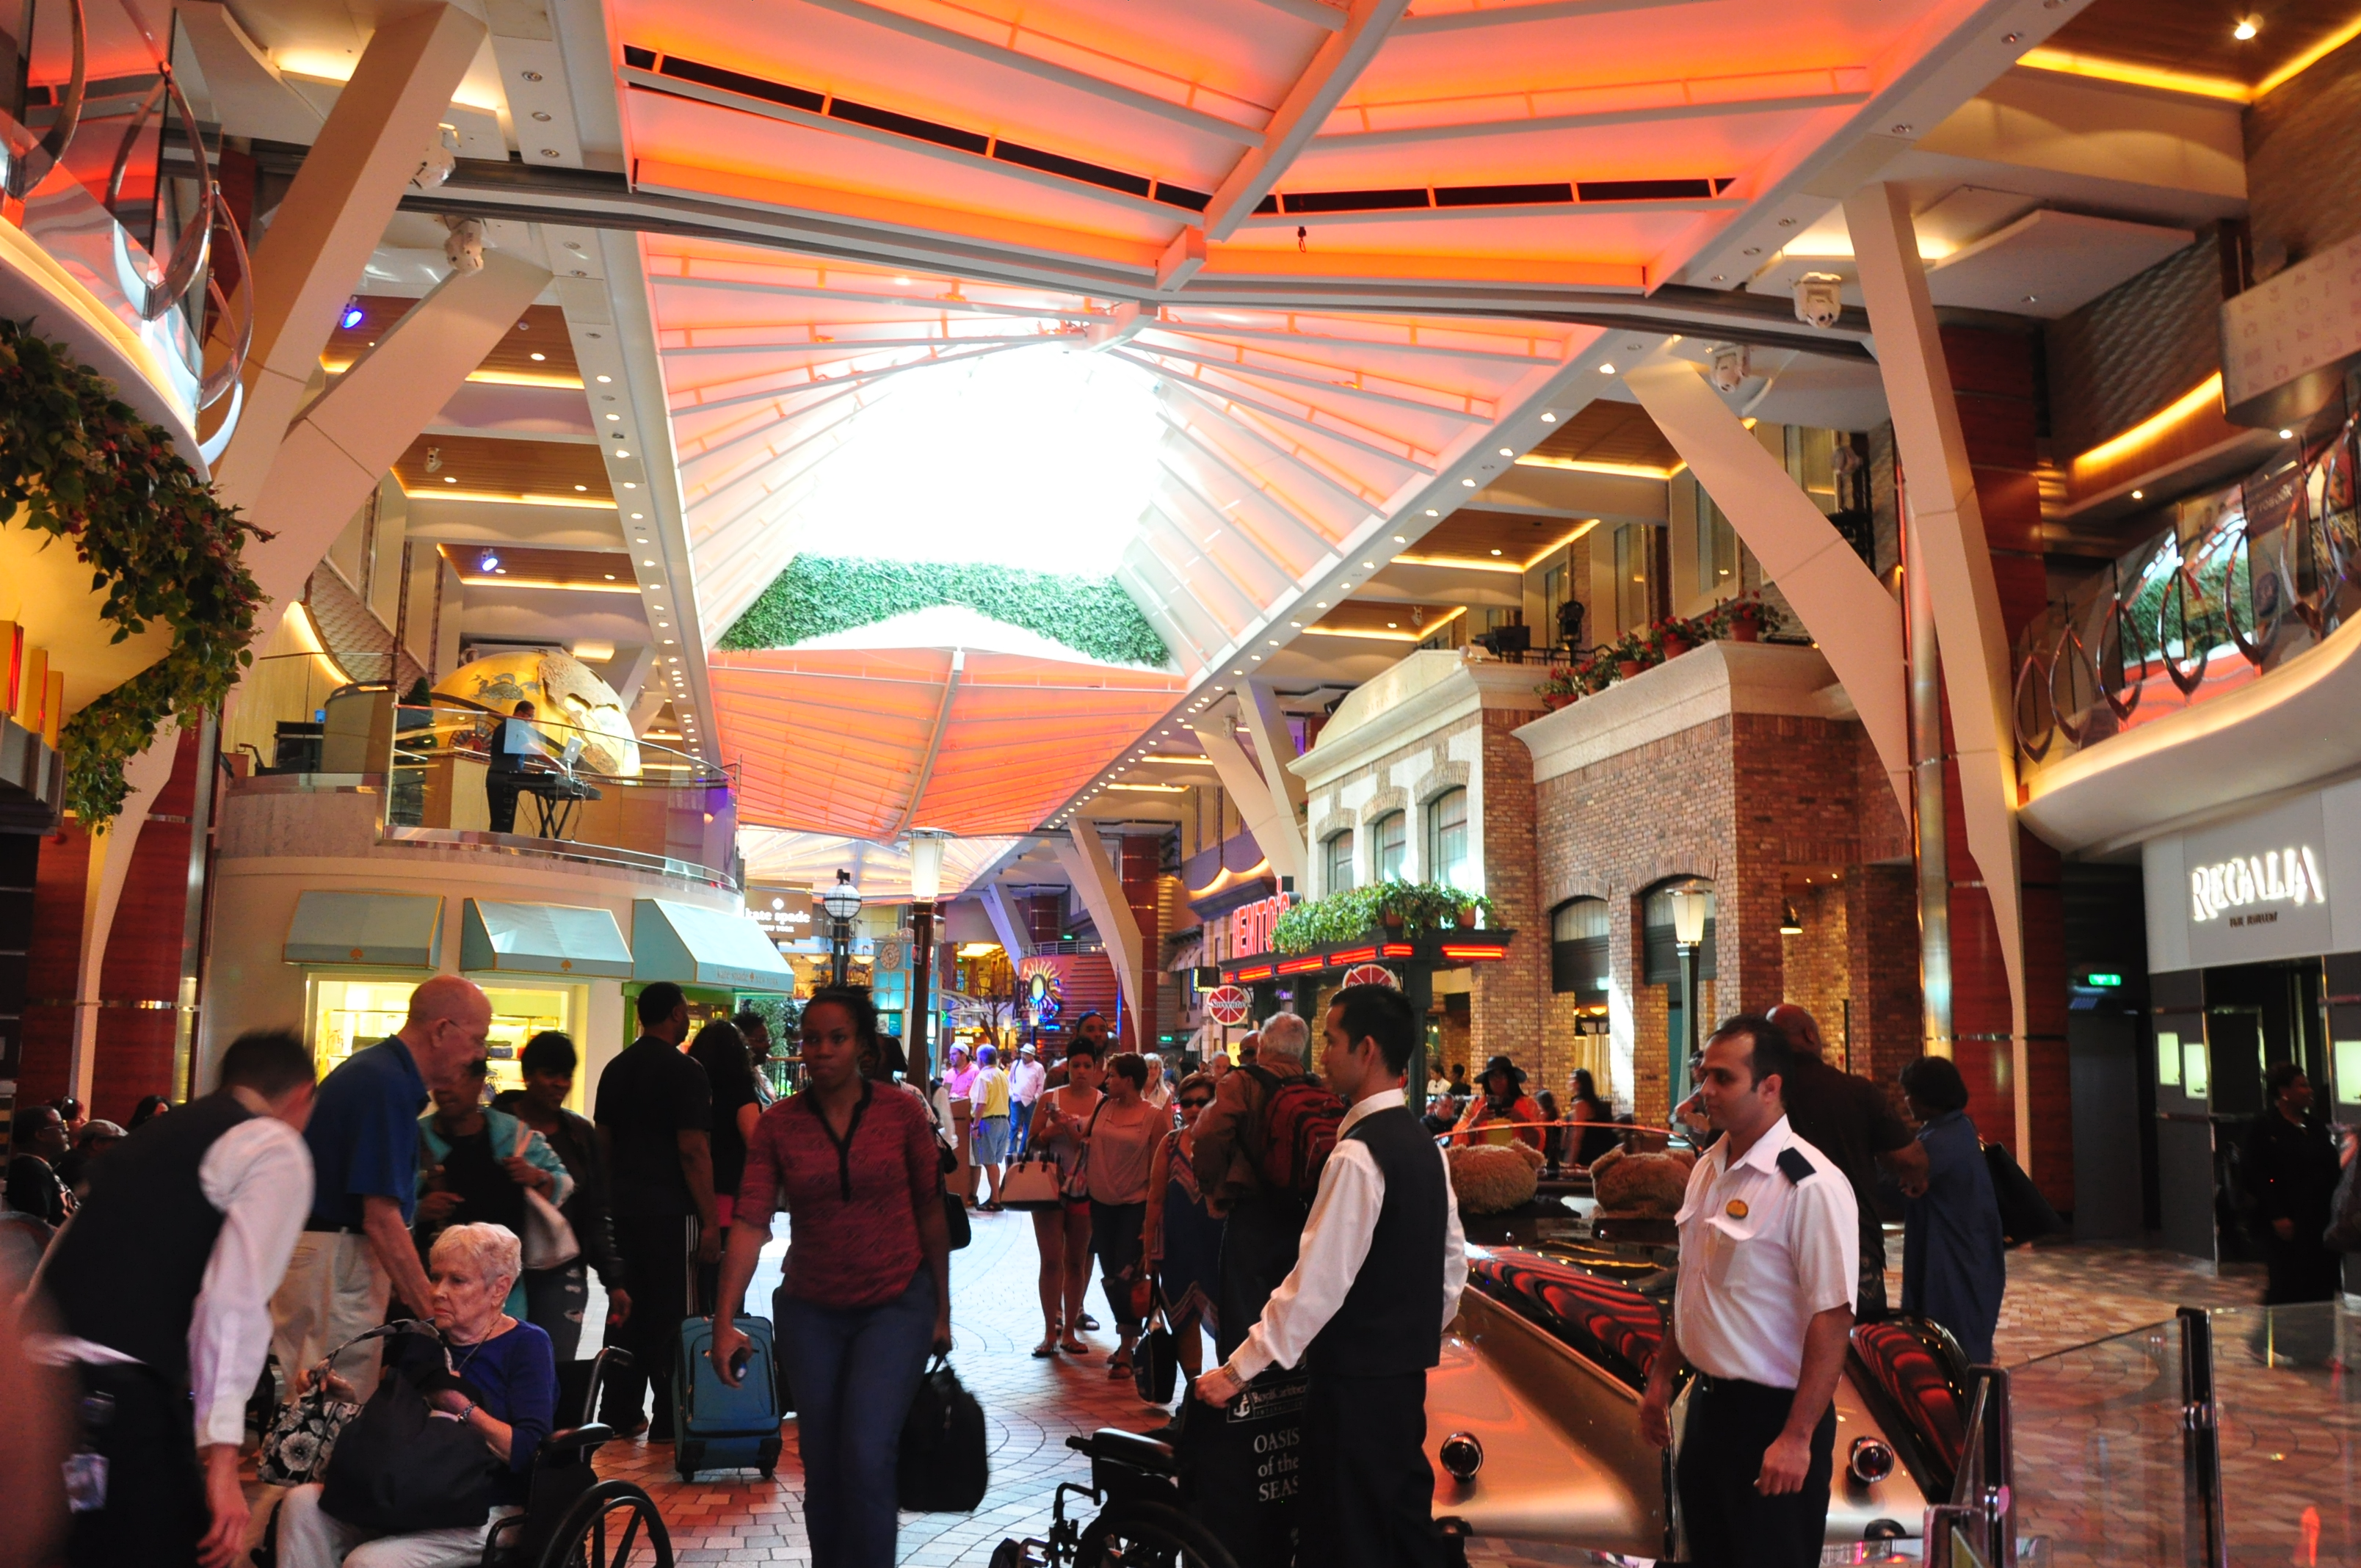 PACKED ROYAL PROMENADE AREA SHORTLY AFTER BOARDING